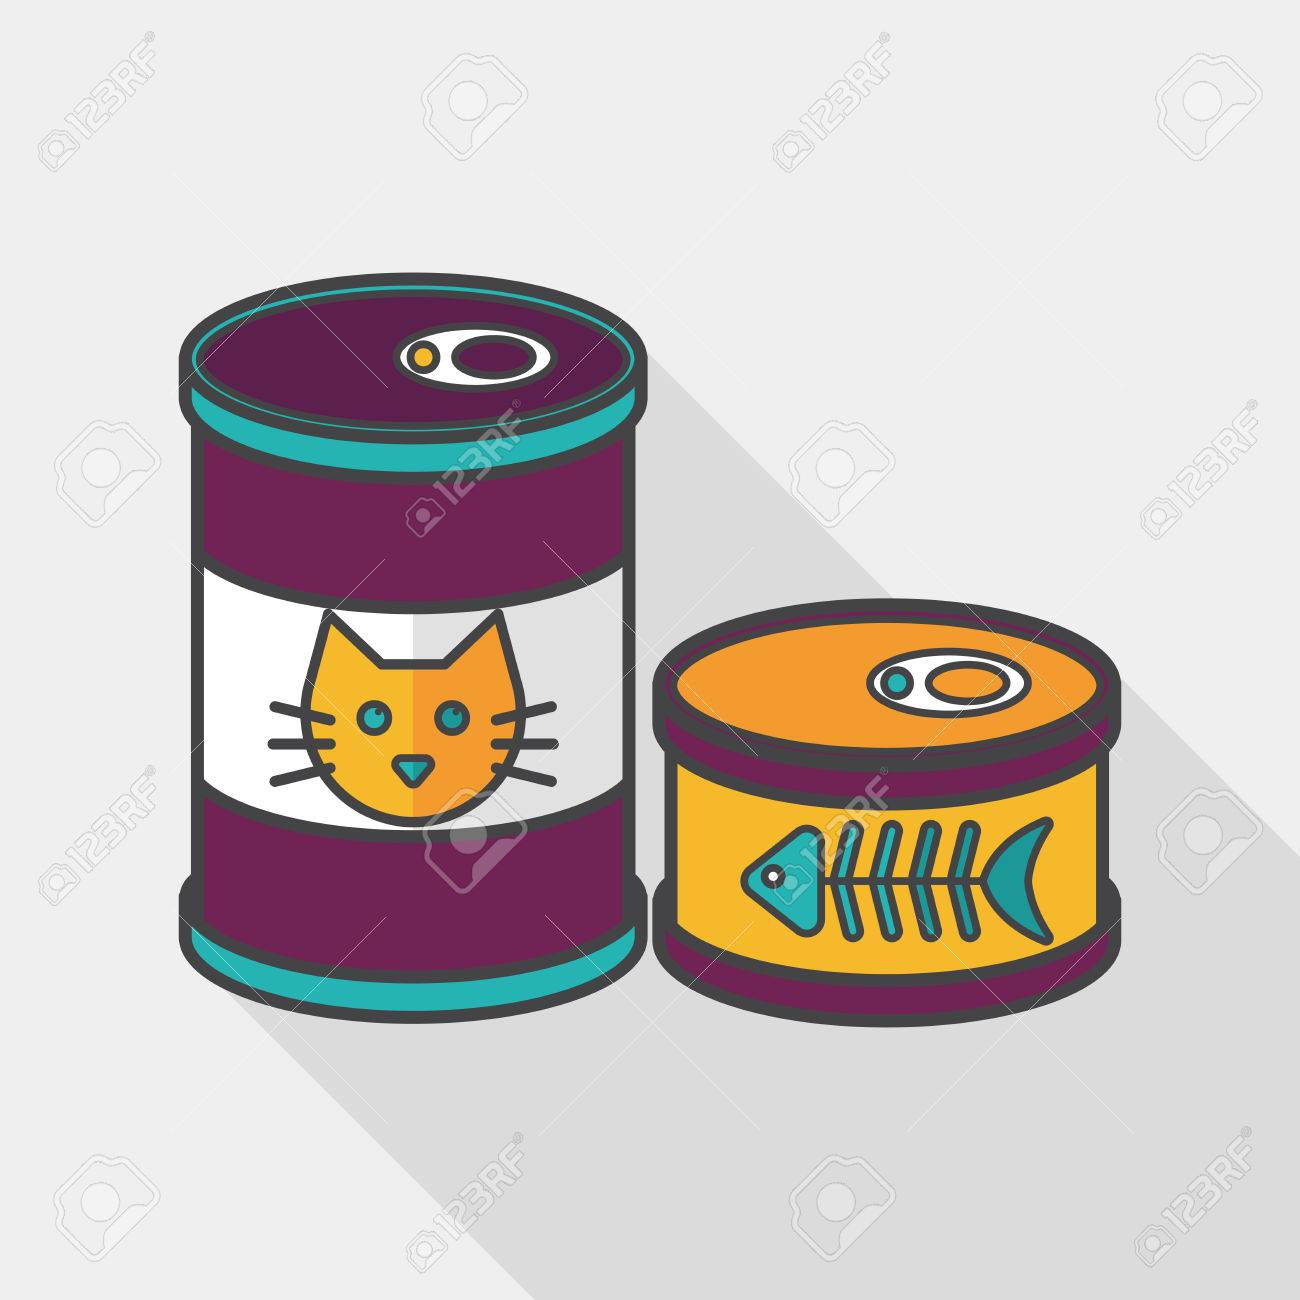 Pet cat food icon. Flat can clipart